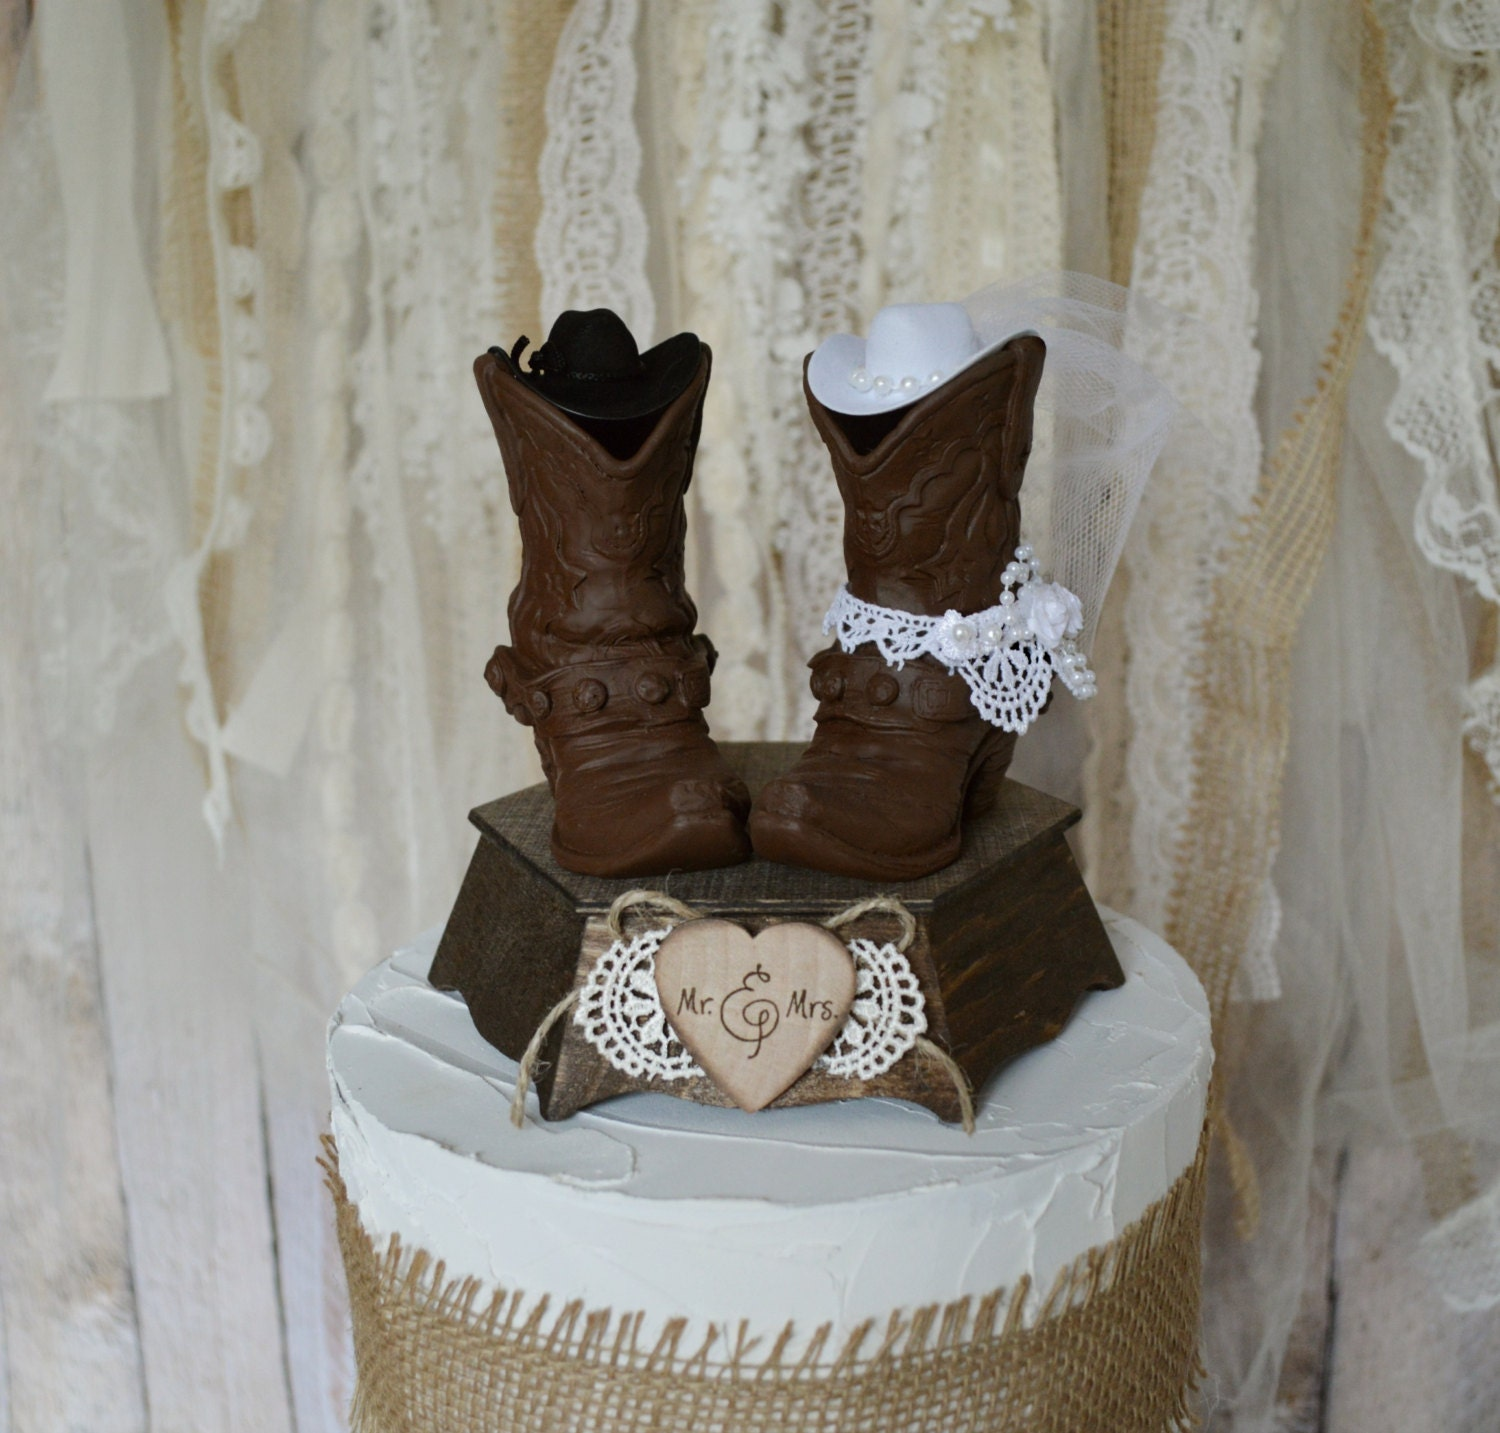 Wedding Cowboy Boots: Mr And Mrs Cowboy Boots Wedding Cake Topper Bride And Groom